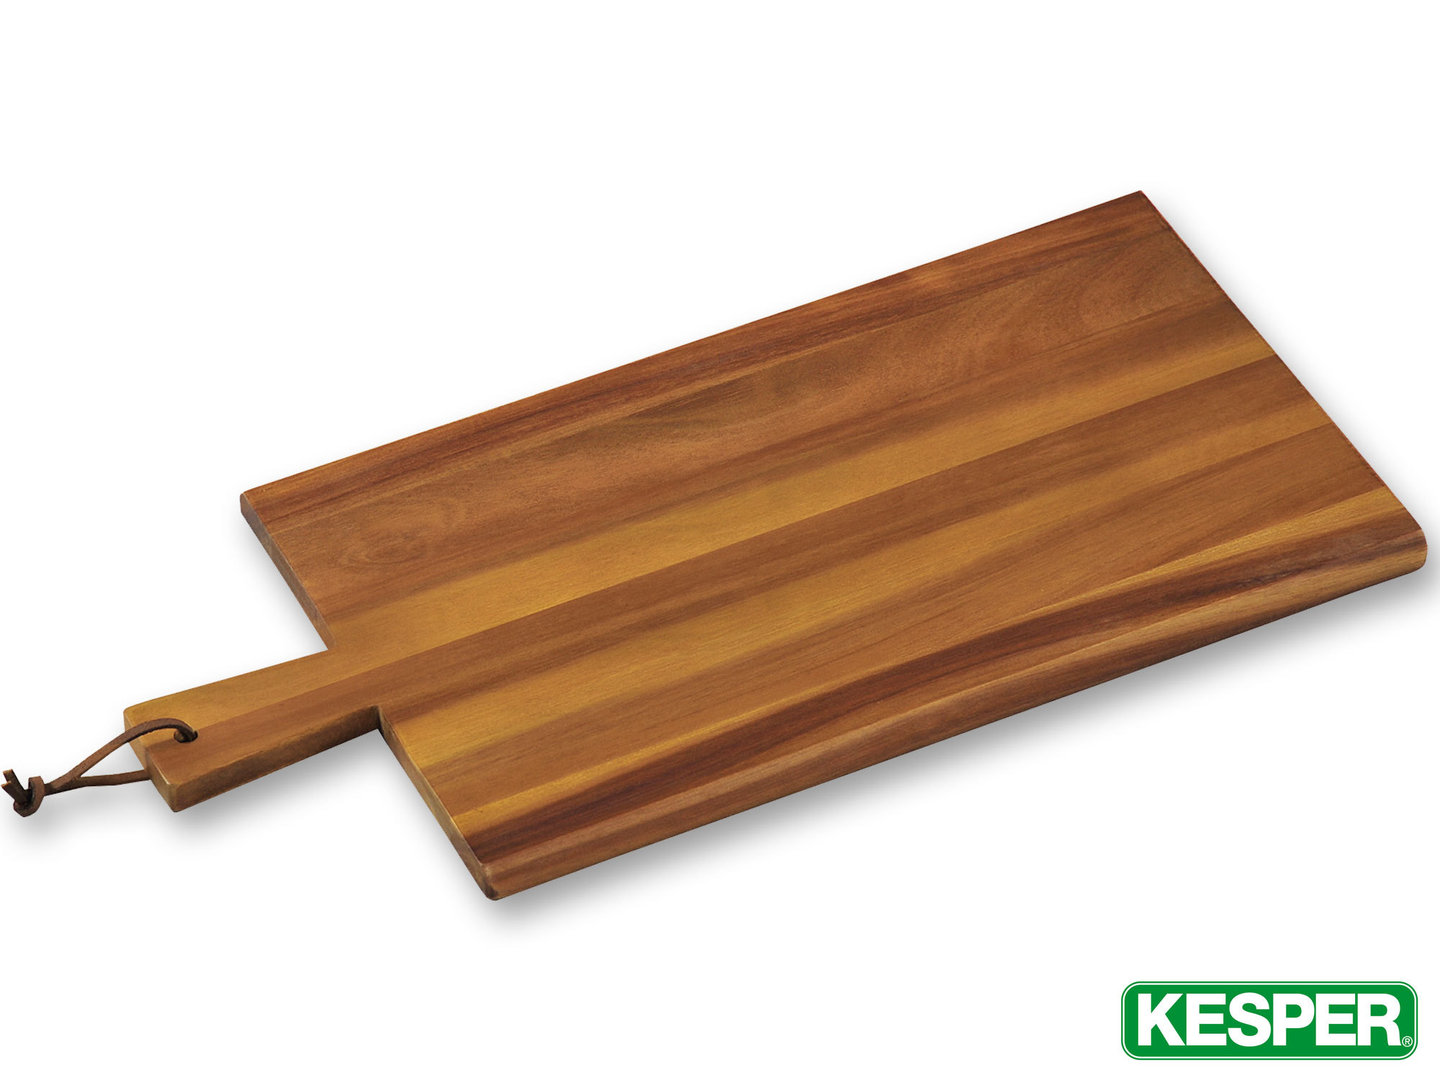 KESPER acacia wood serving tray 45 x 22 x 1,5 cm cutting board